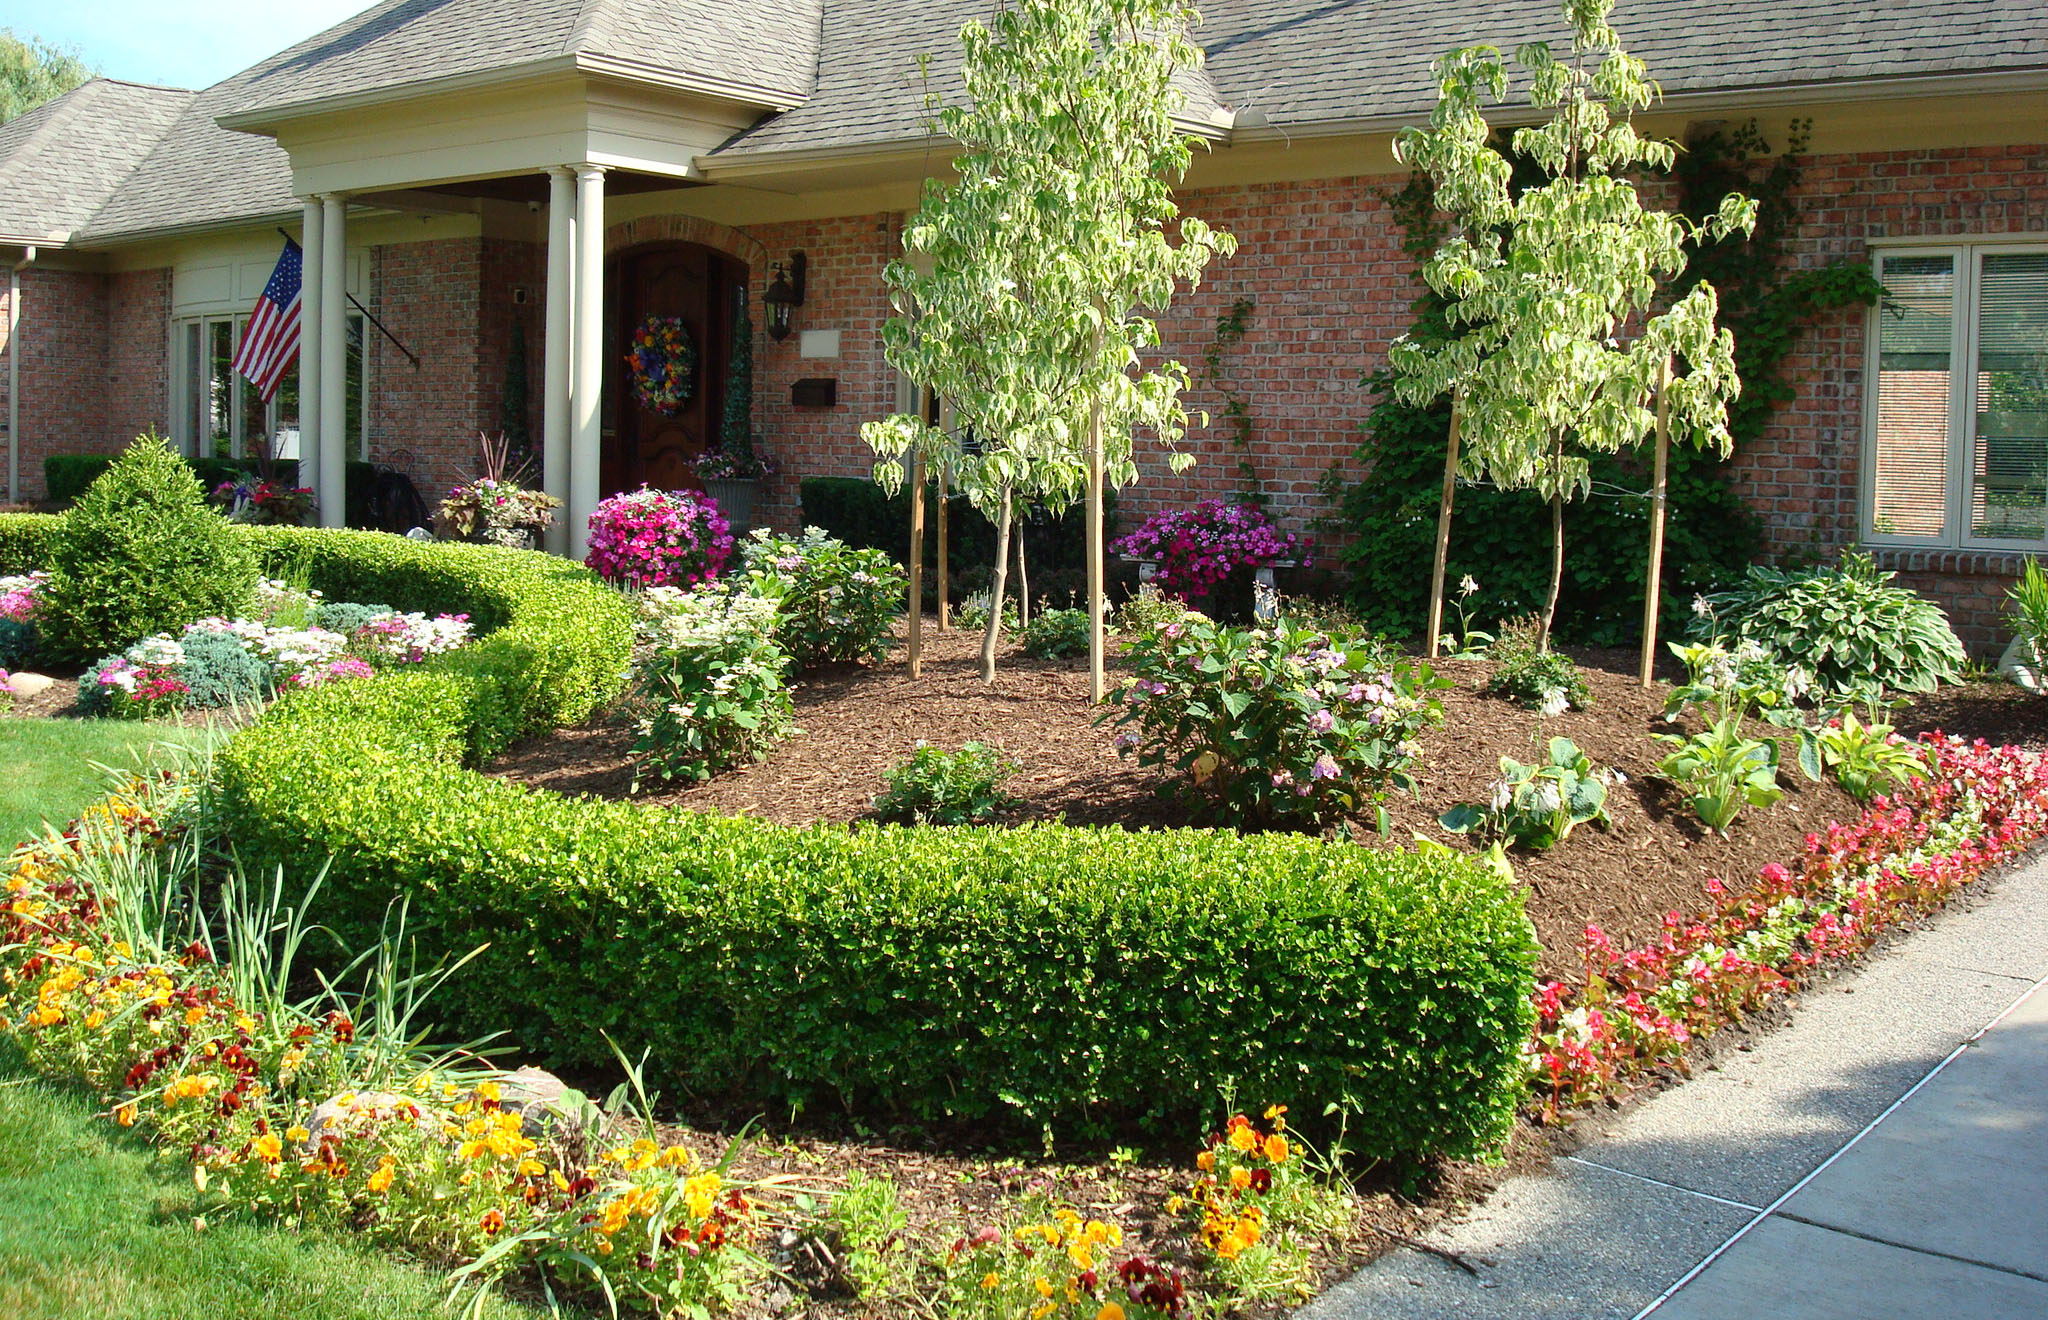 Routine Landscape Maintenance